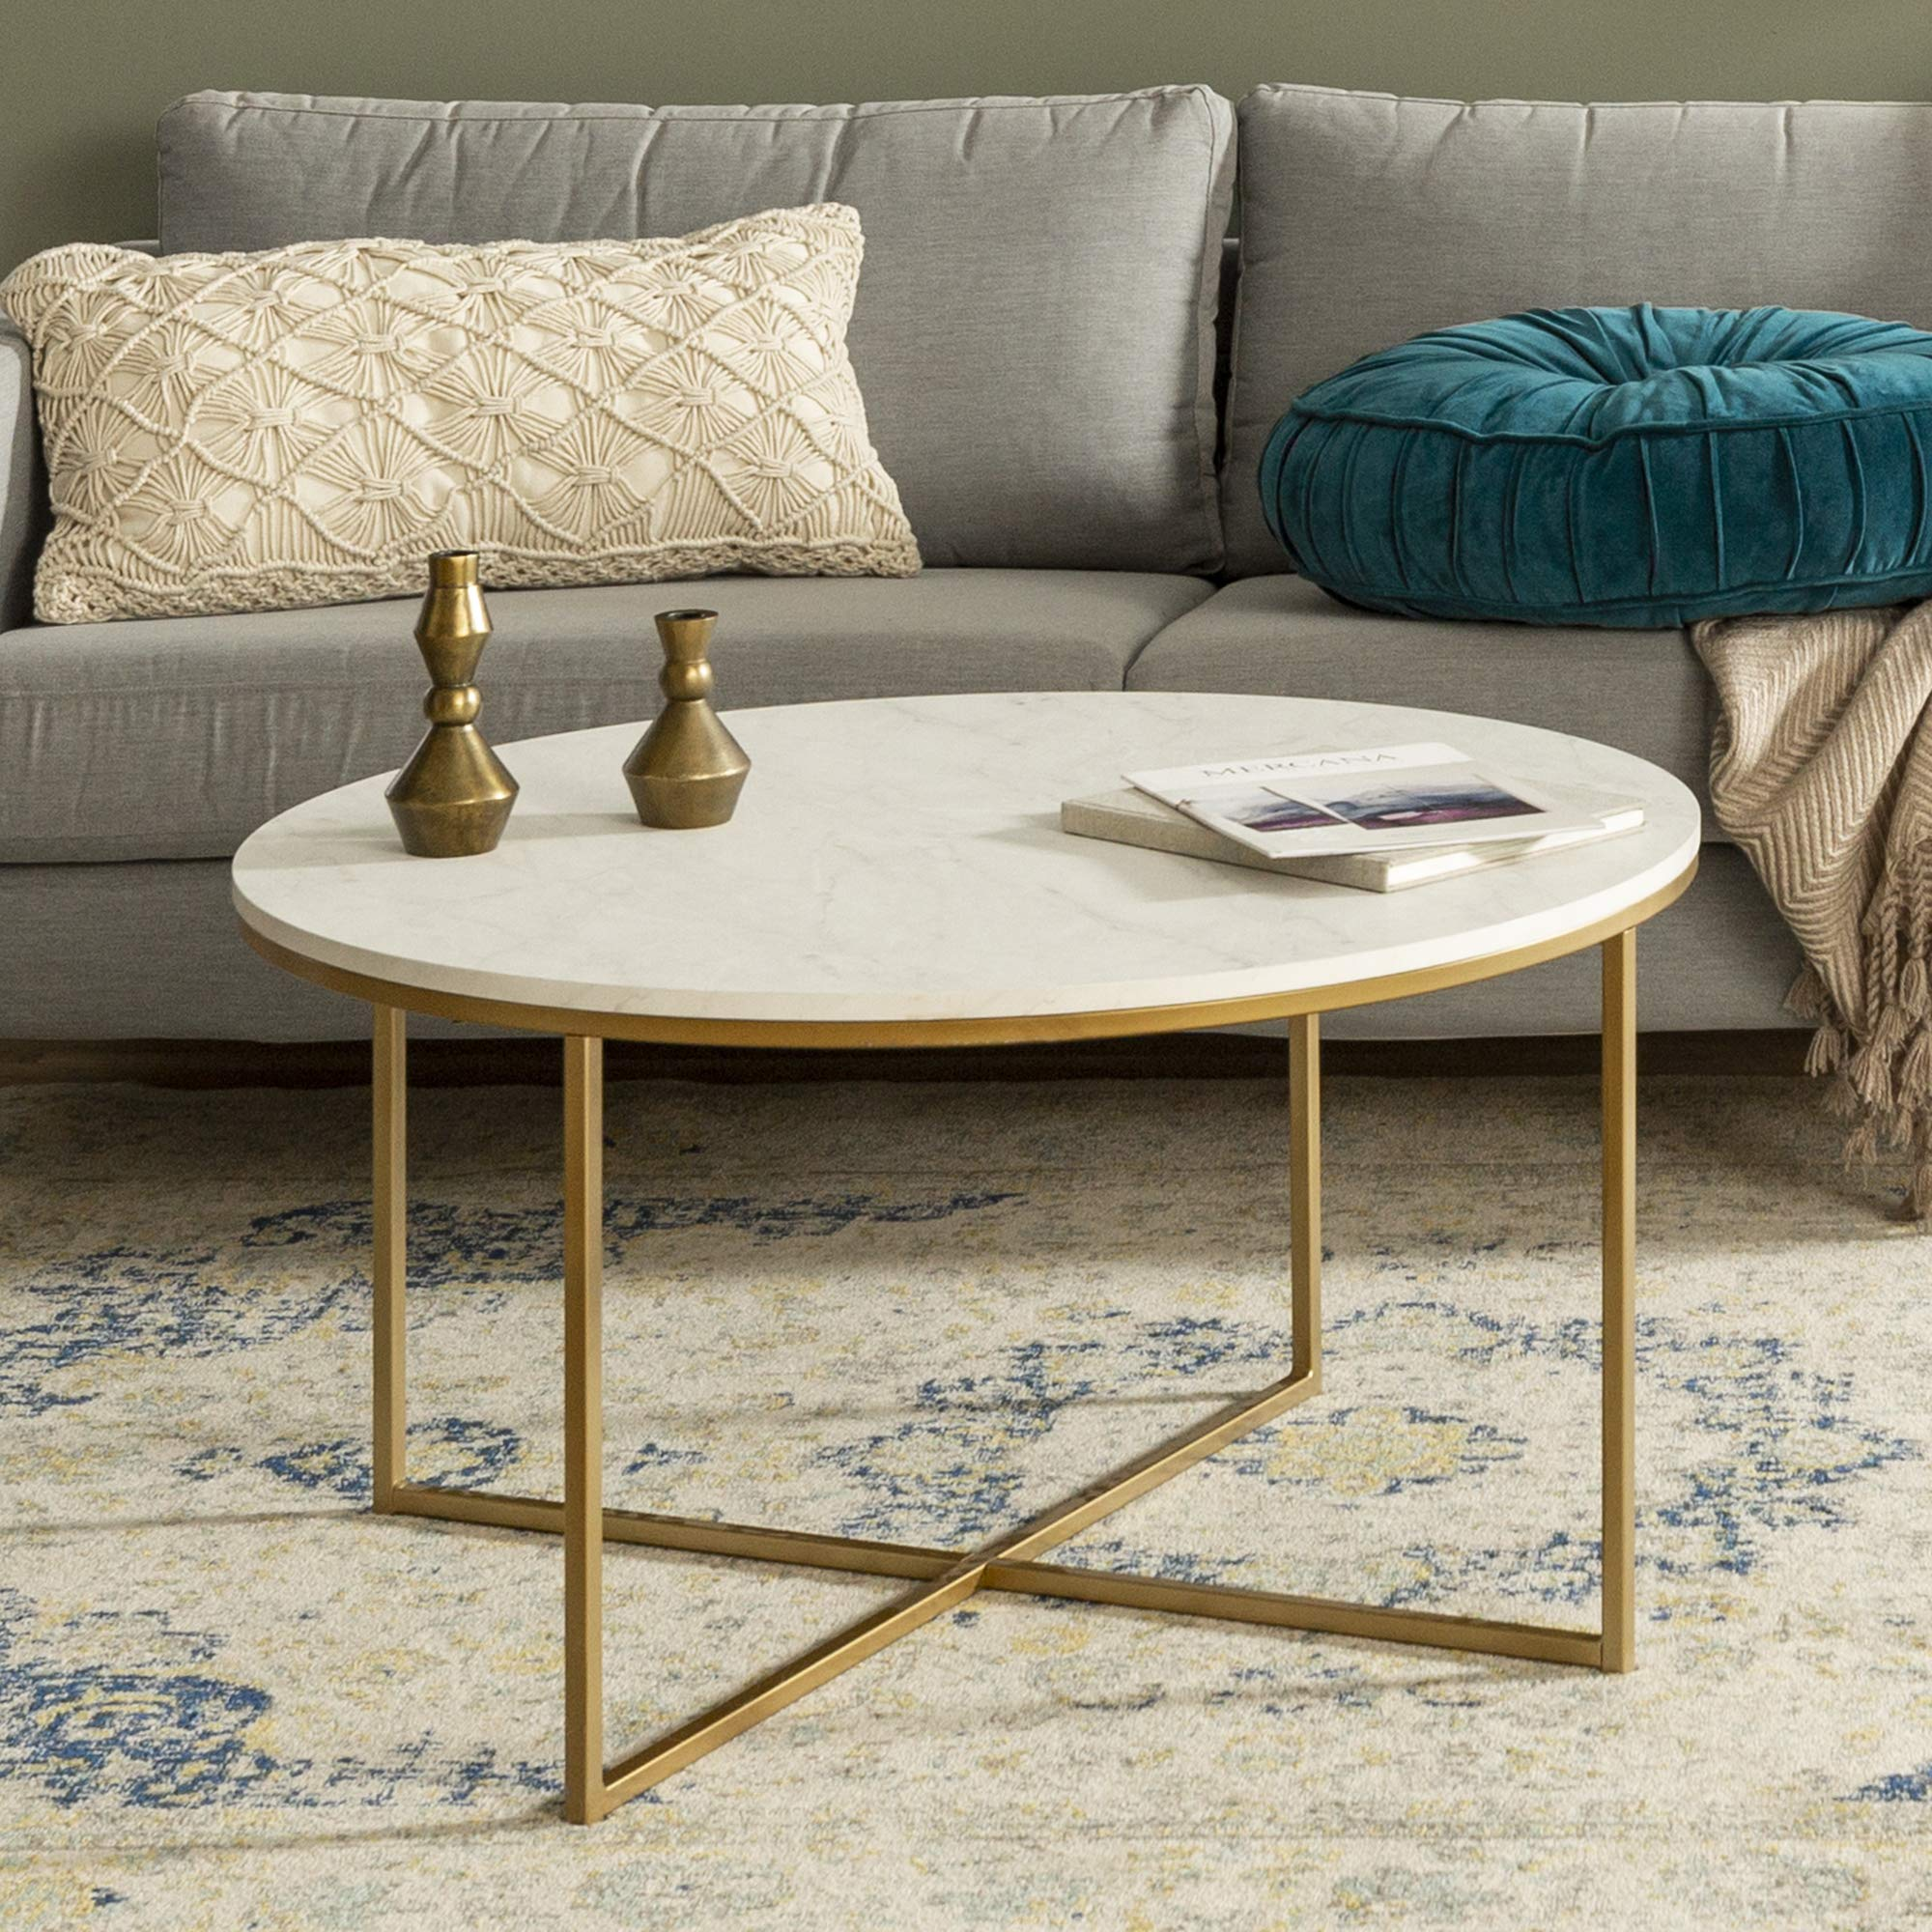 WE Furniture AZF36ALCTMGD Modern Round Coffee Accent Table Living Room, 36 Inch, White Marble, Gold by WE Furniture